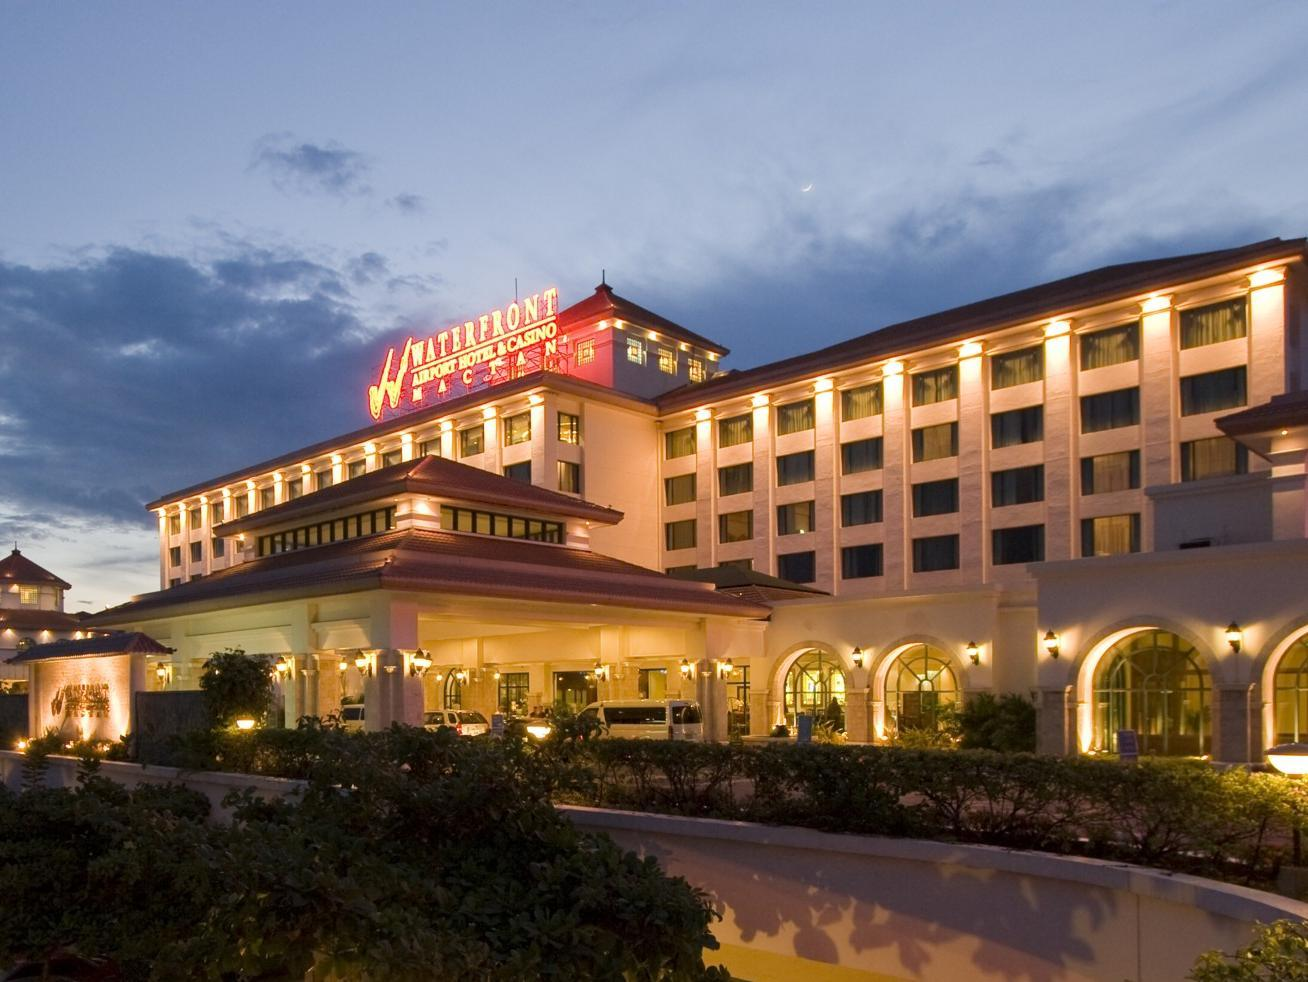 Waterfront Airport Hotel and Casino Cebu - Hotelli välisilme